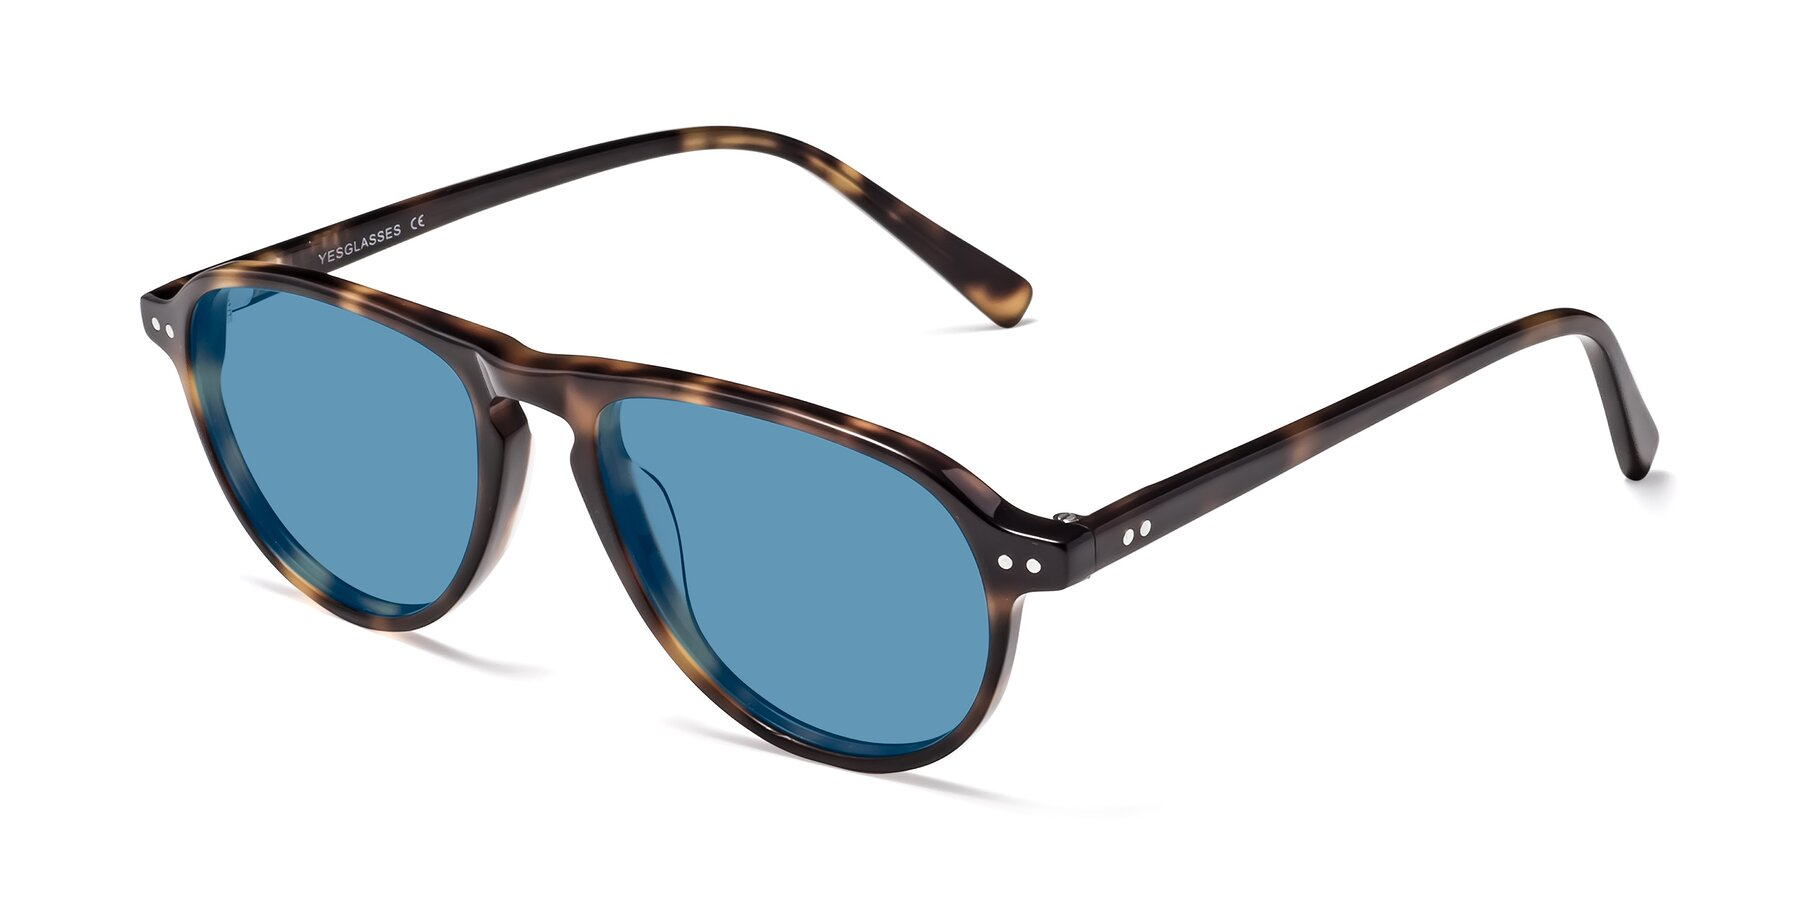 Angle of 17544 in Tortoise with Medium Blue Tinted Lenses